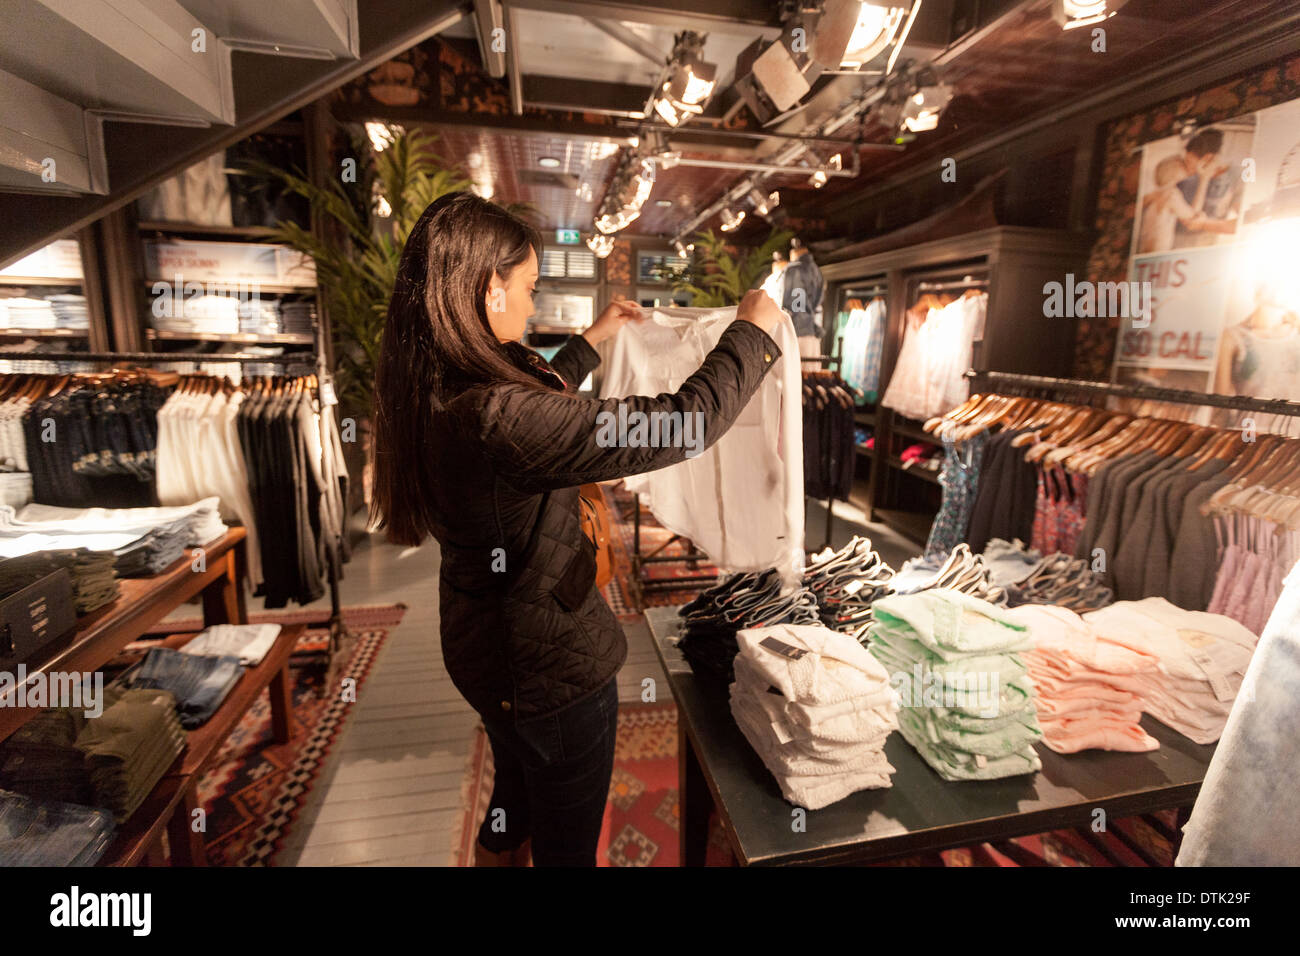 A young woman shopping and buying clothes in the Hollister ...